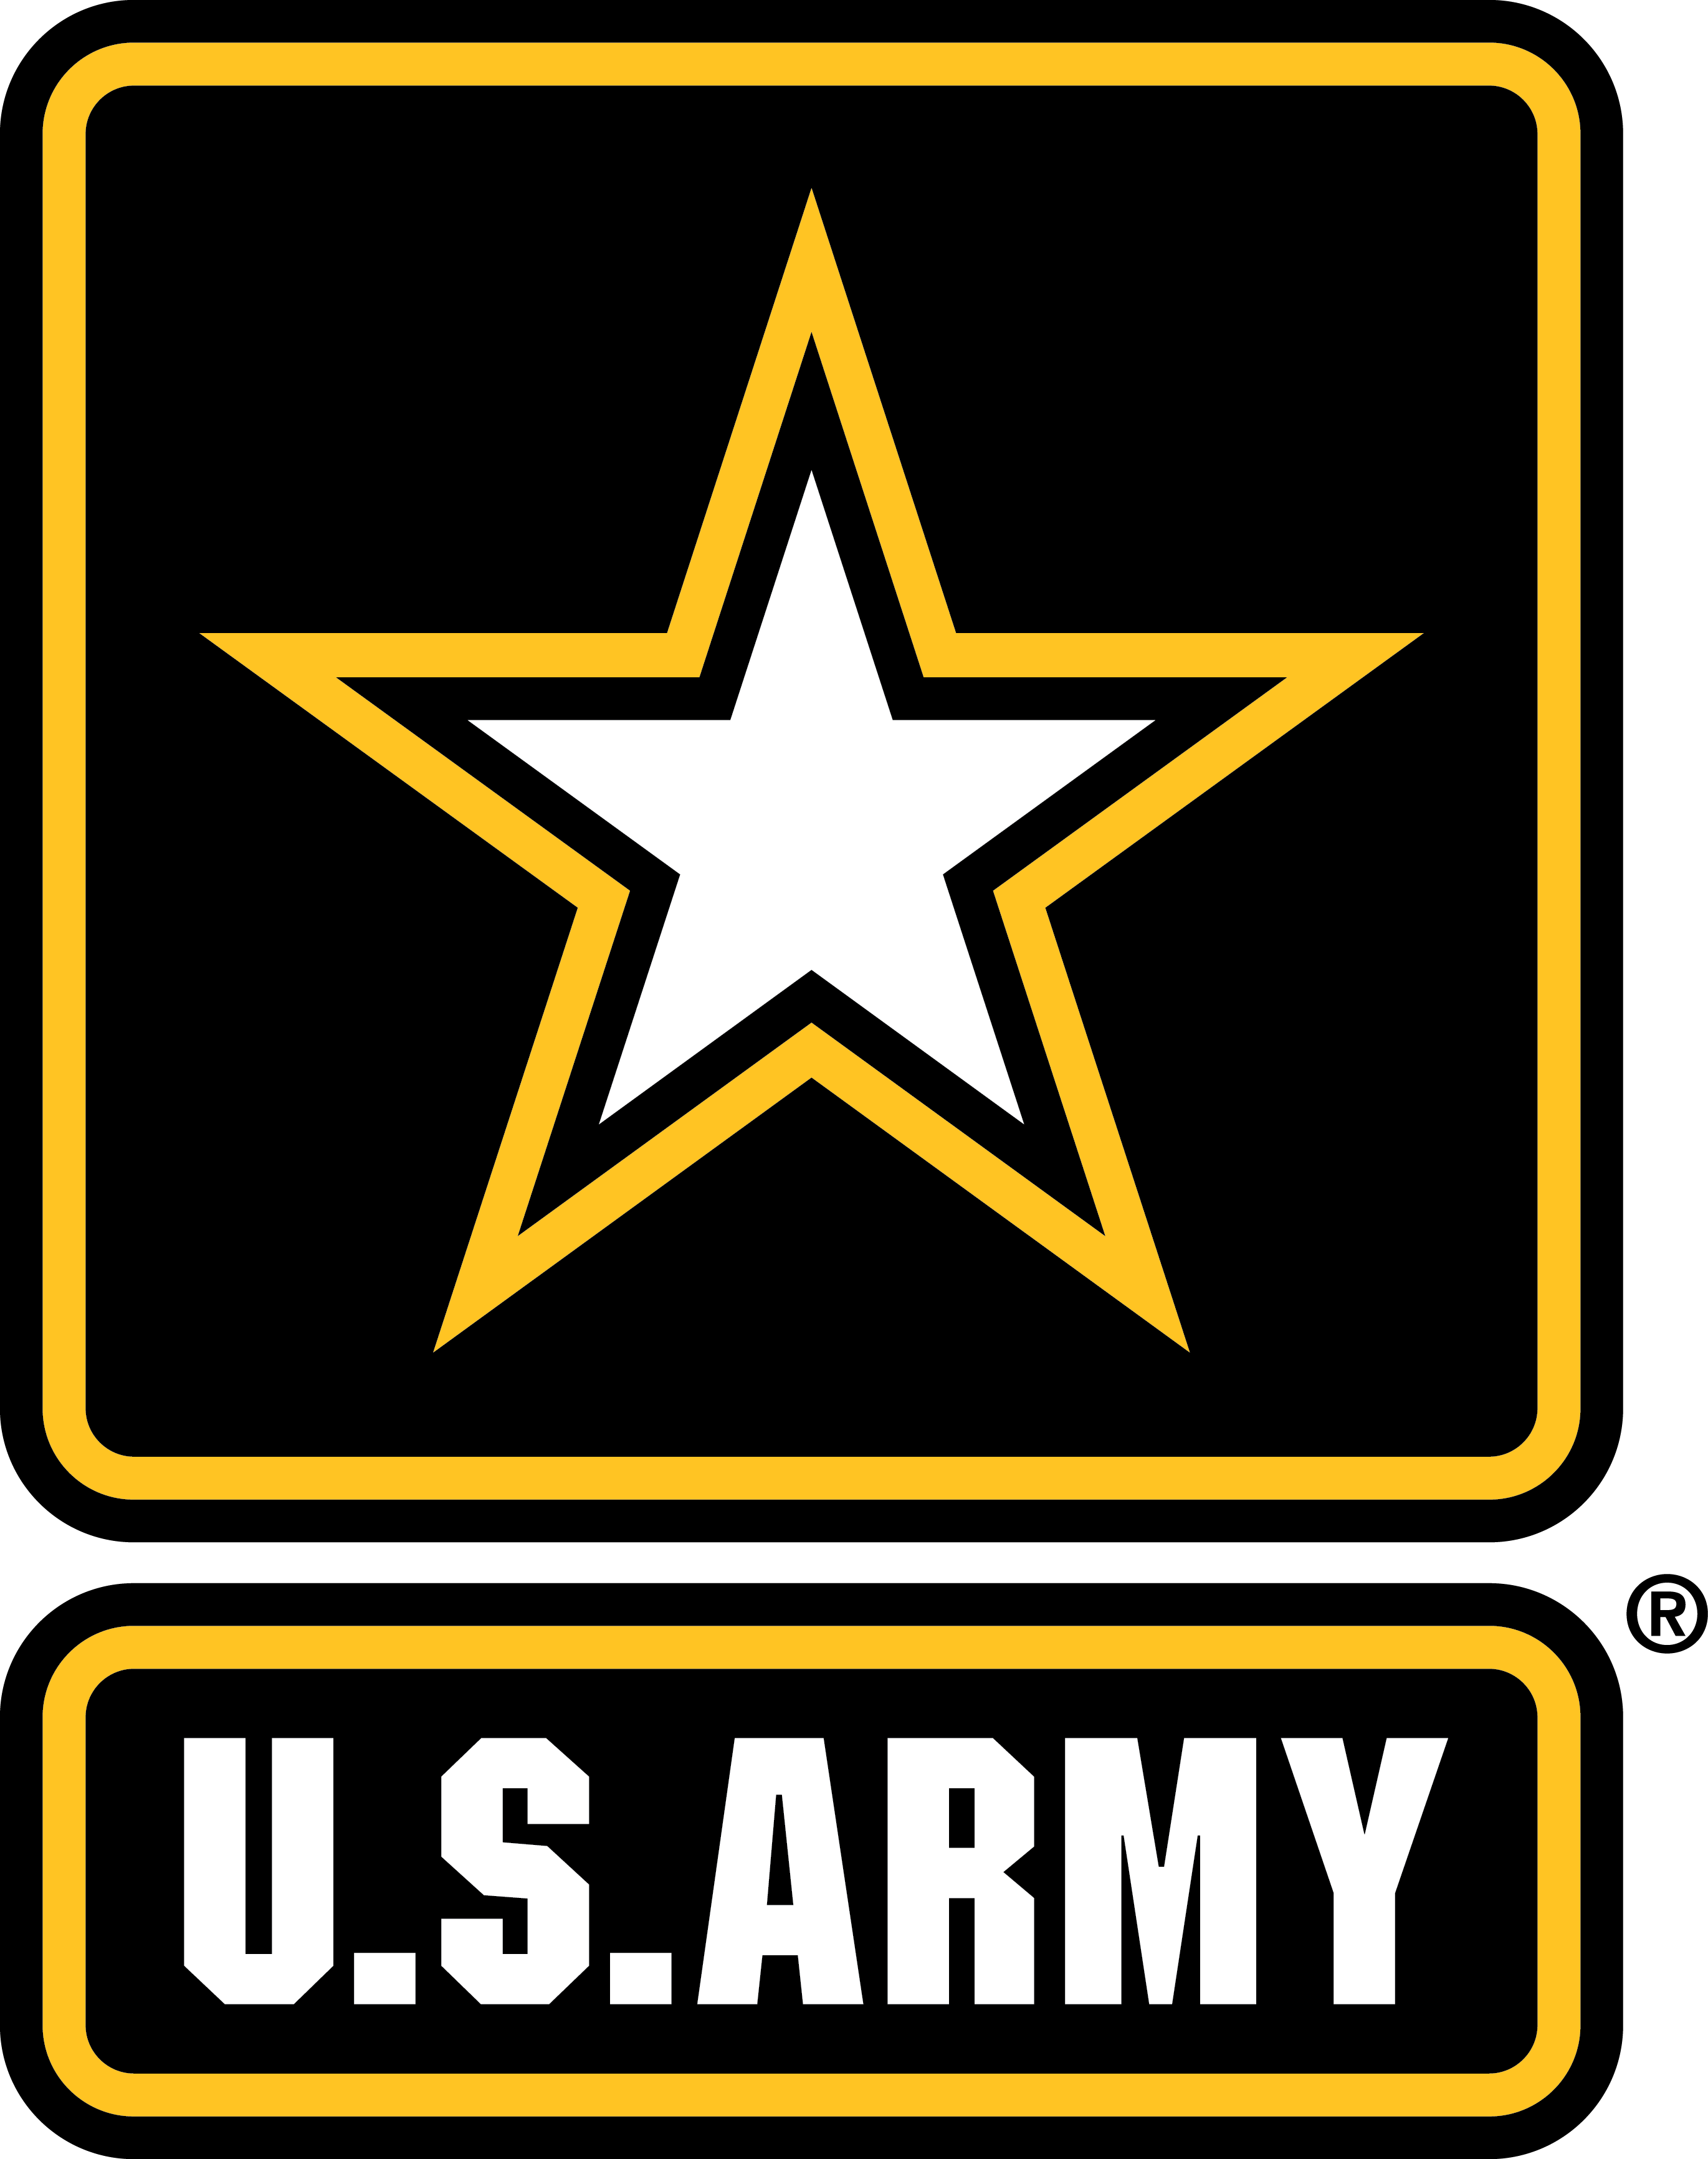 Army clipart badges. Symbols insignias of the